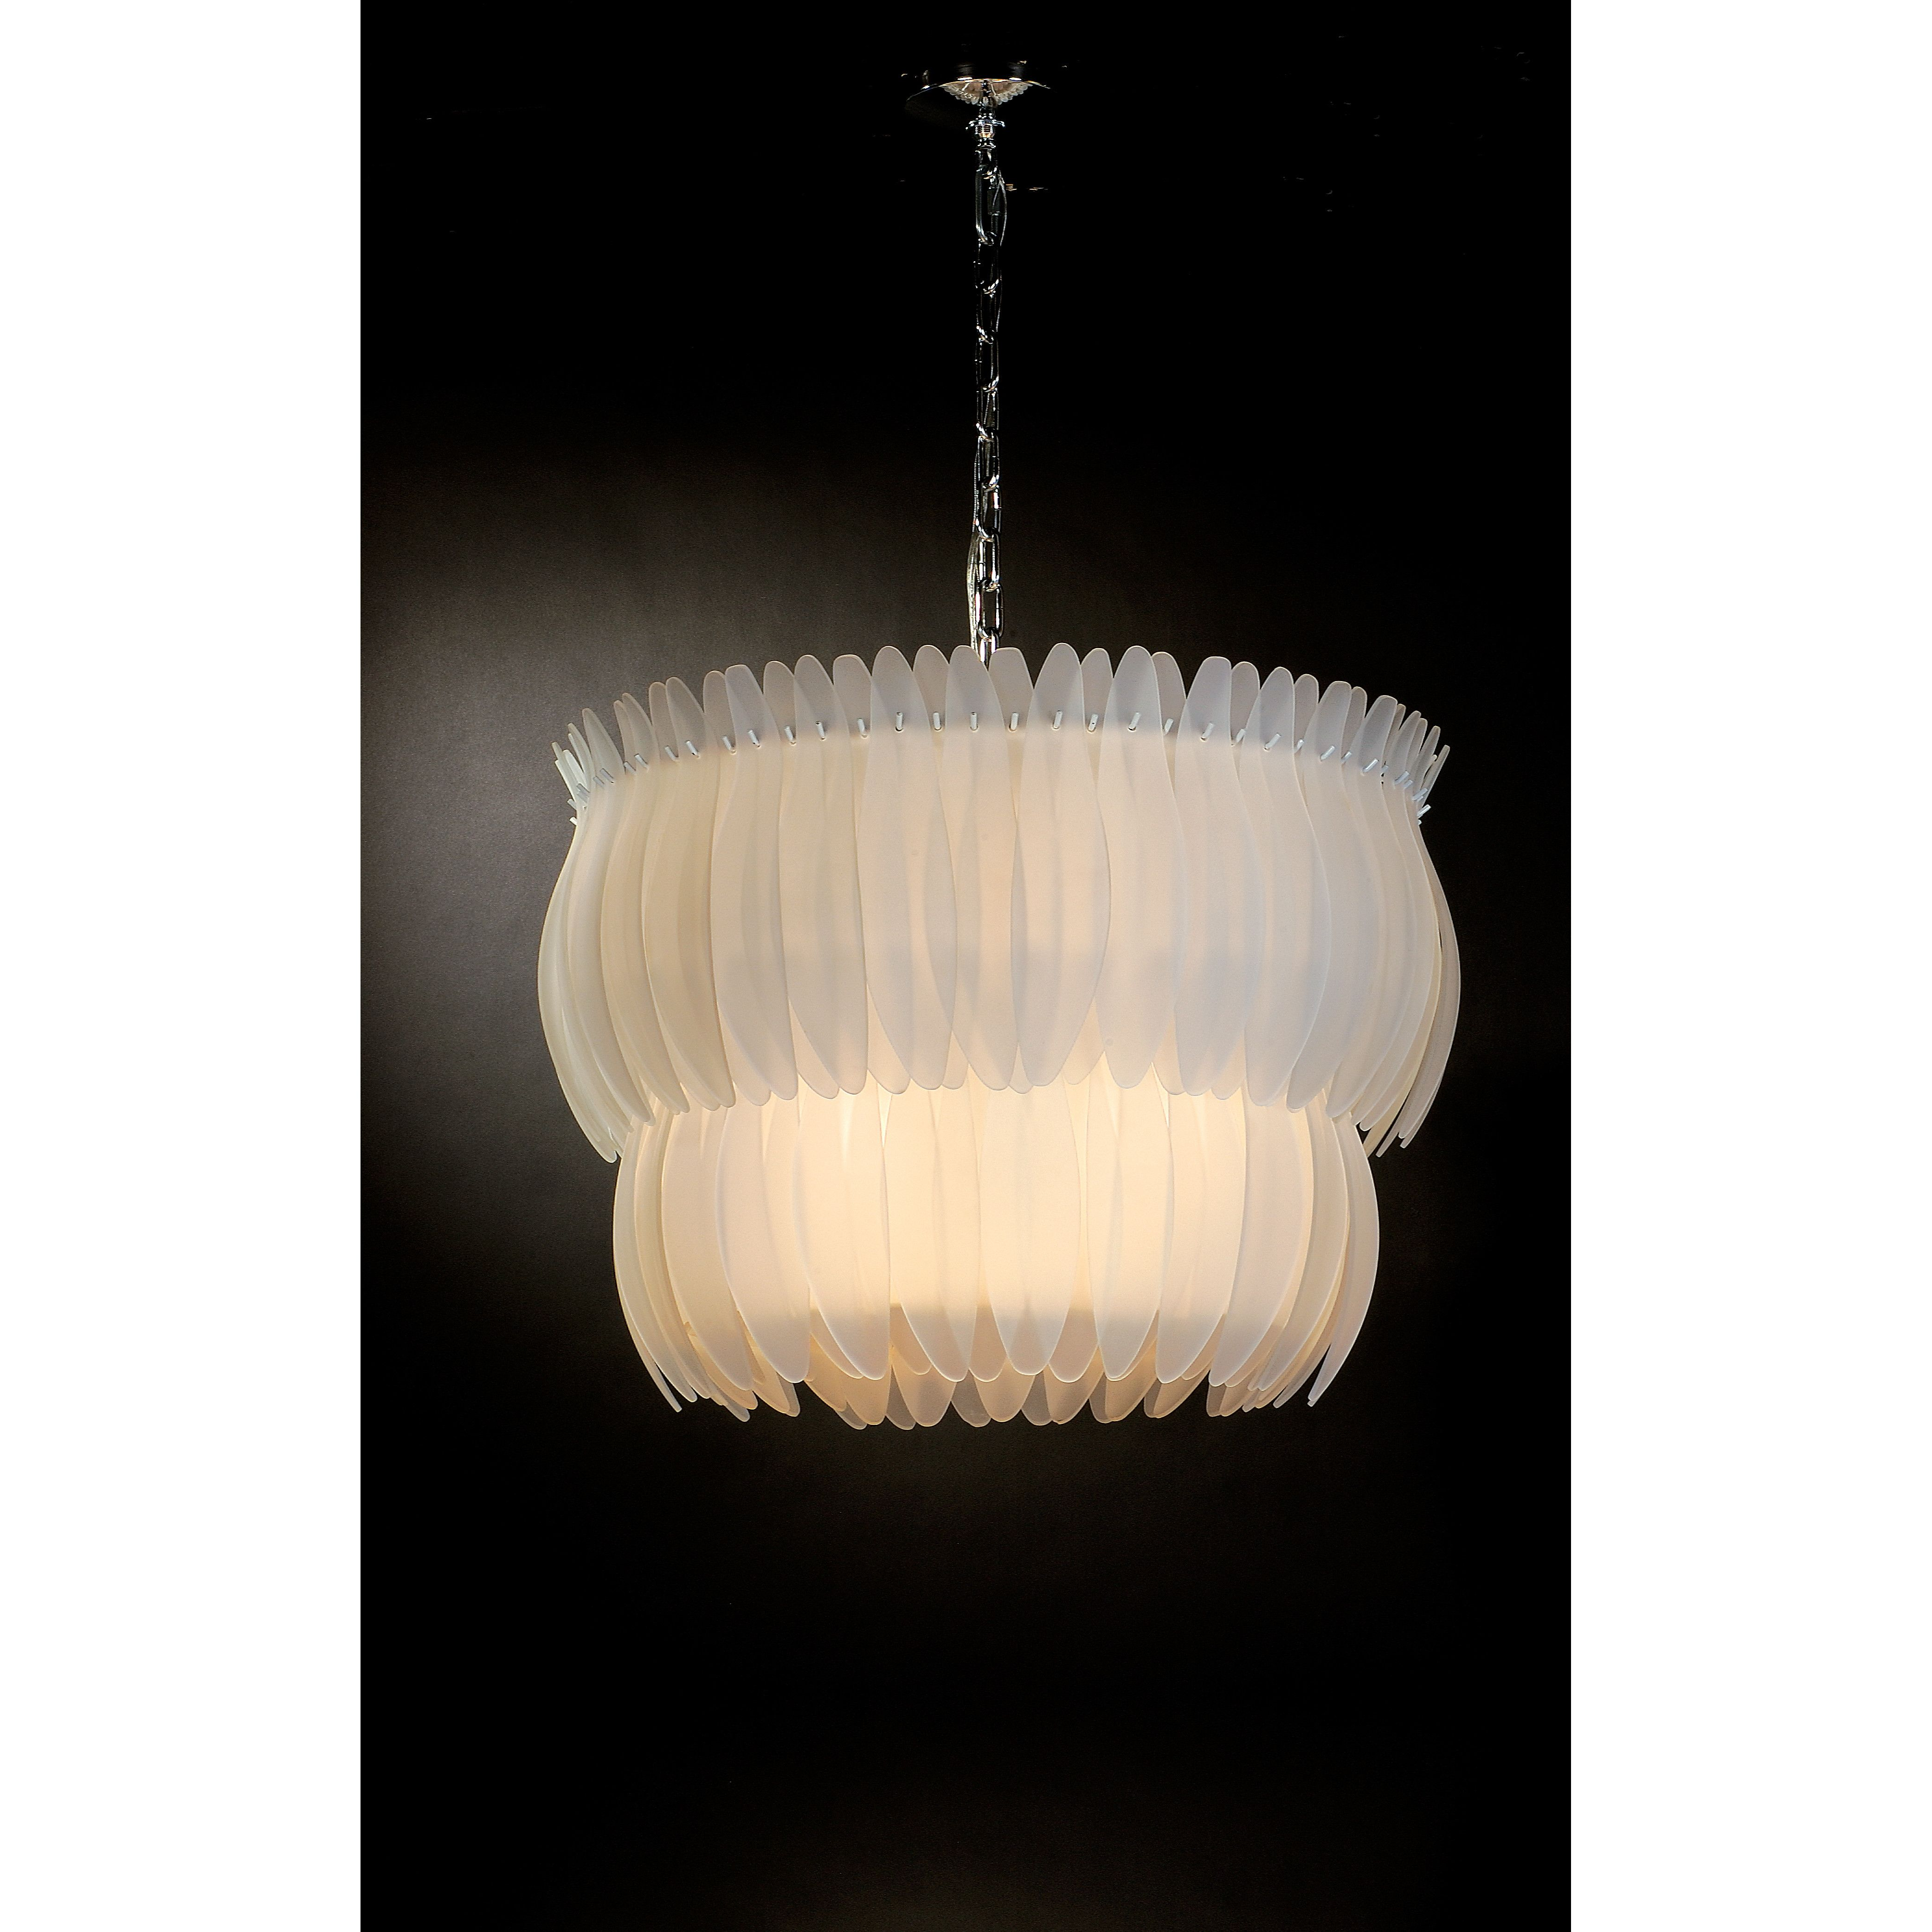 Trend lighting corp aphrodite chandelier aventura living room trend lighting corp aphrodite chandelier aloadofball Image collections